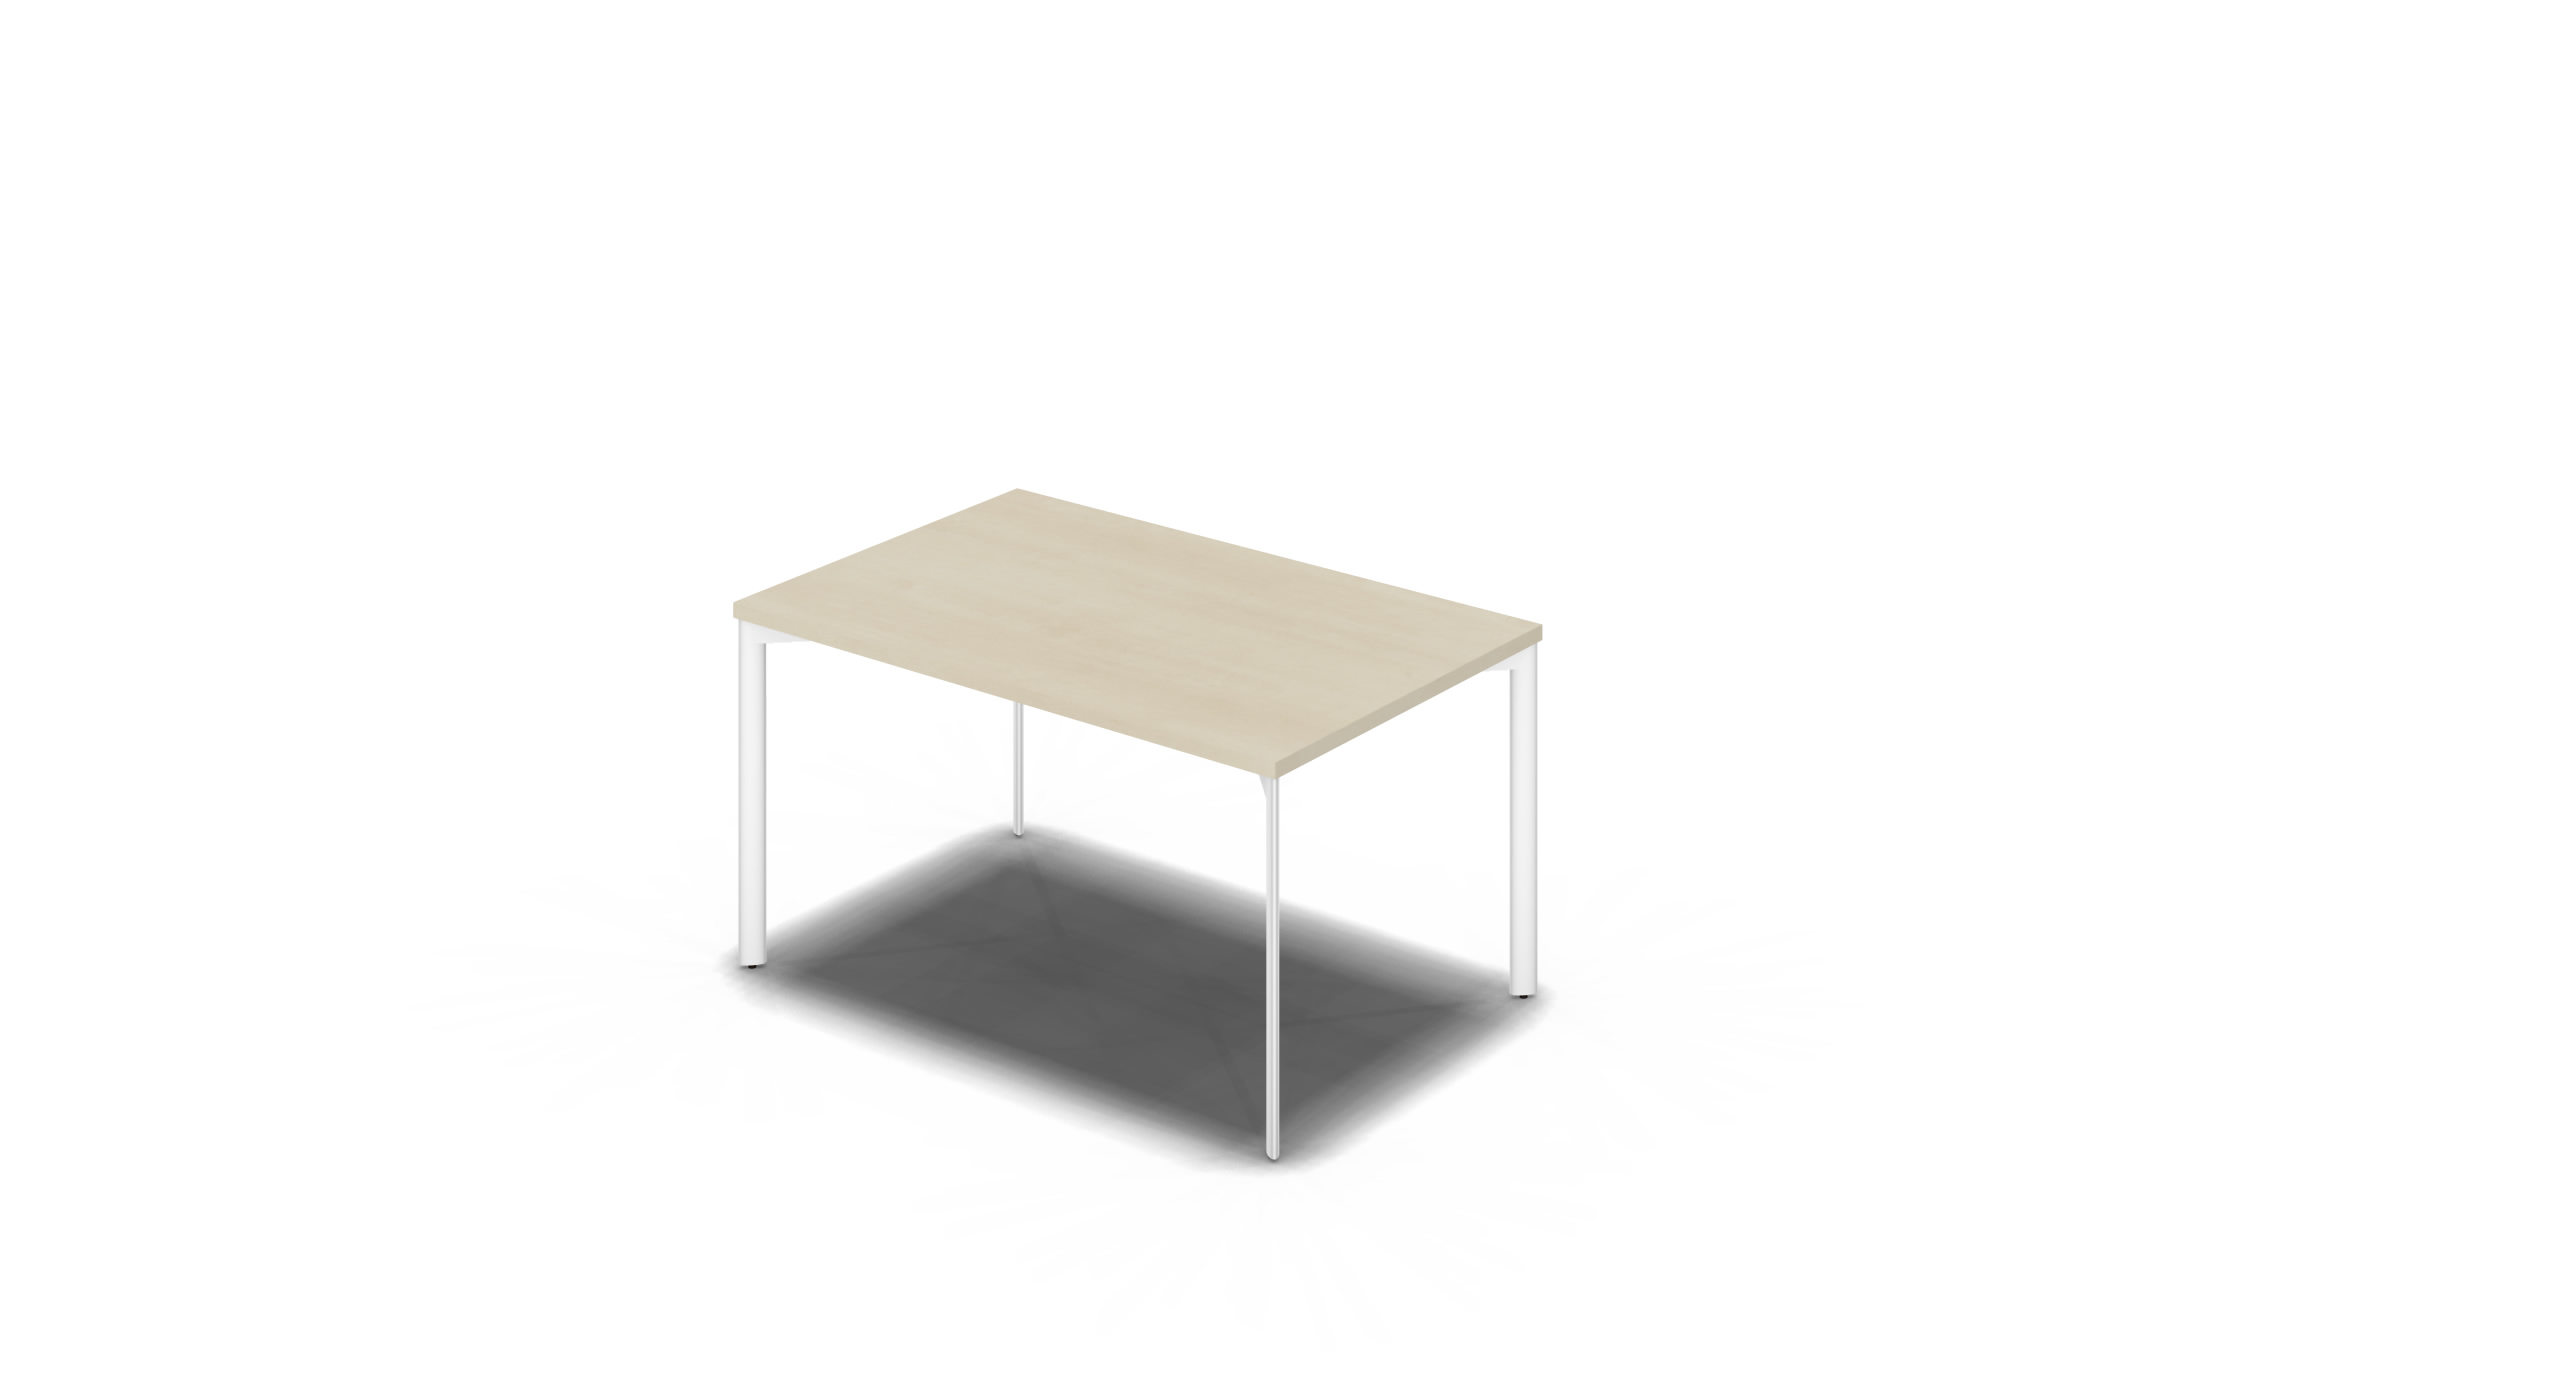 Table_Slim_1200x750_White_Maple_noOption